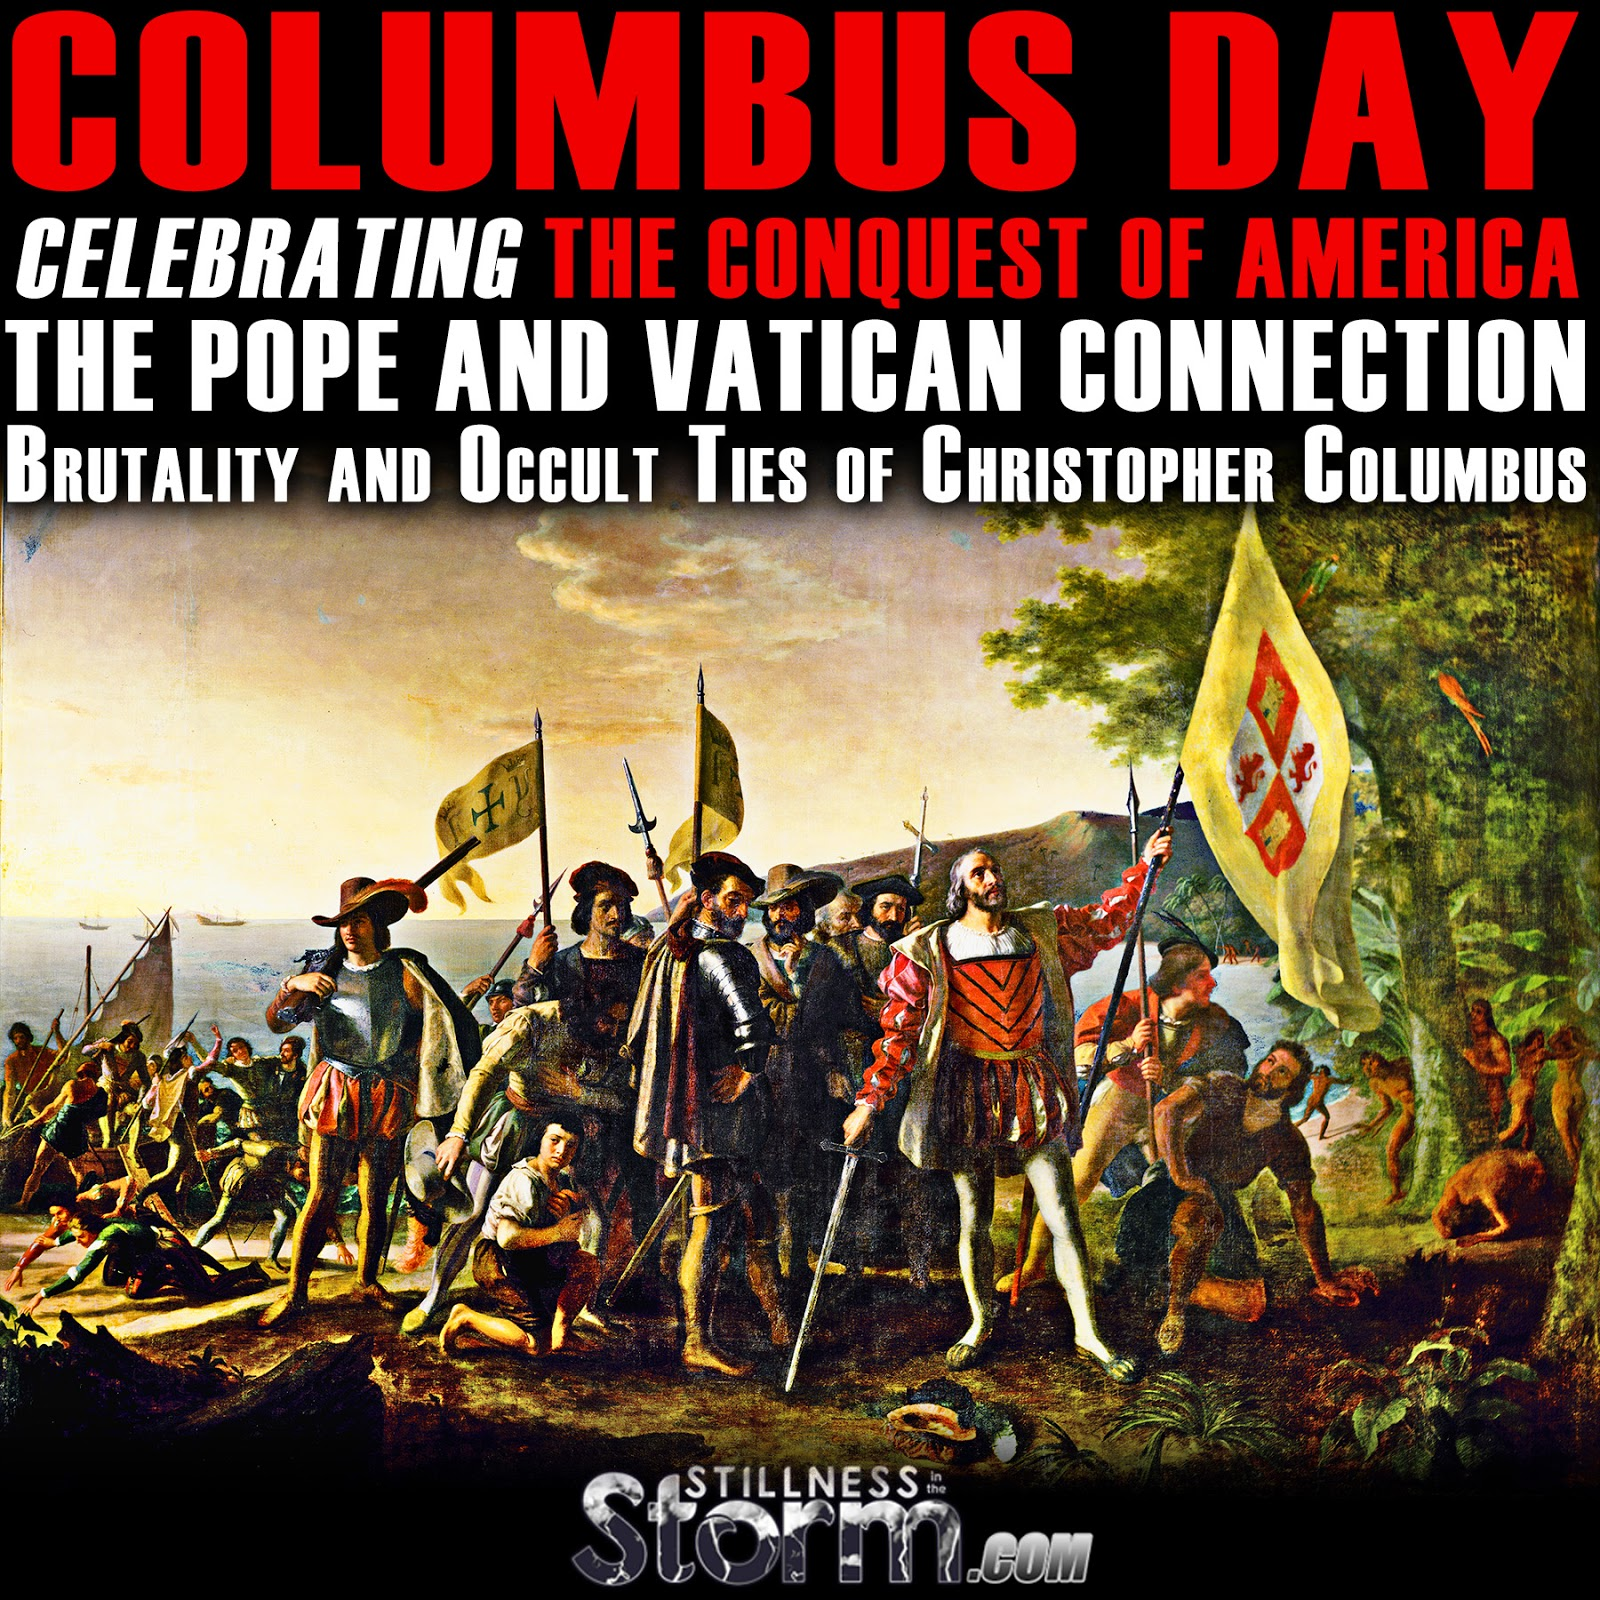 columbus day Columbus day 2018, columbus day 2019 and further view here the holidays in the united states in 2018, including columbus day 2018, columbus day 2019 and further and also every other holiday.